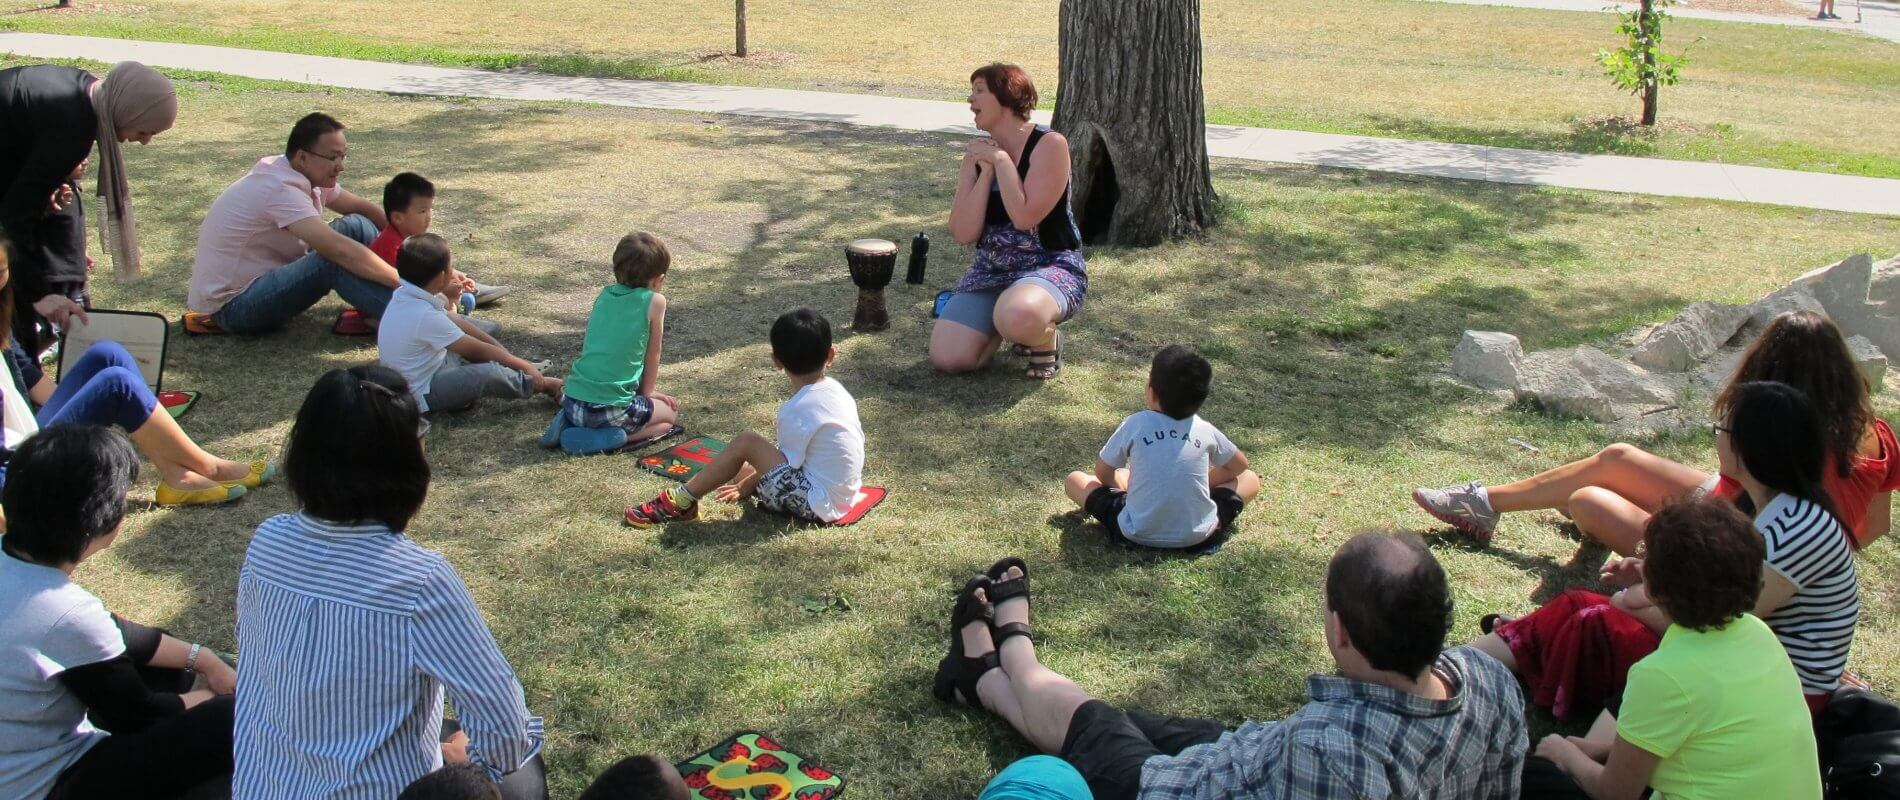 An outdoor family activity with Mosaic learners and staff.